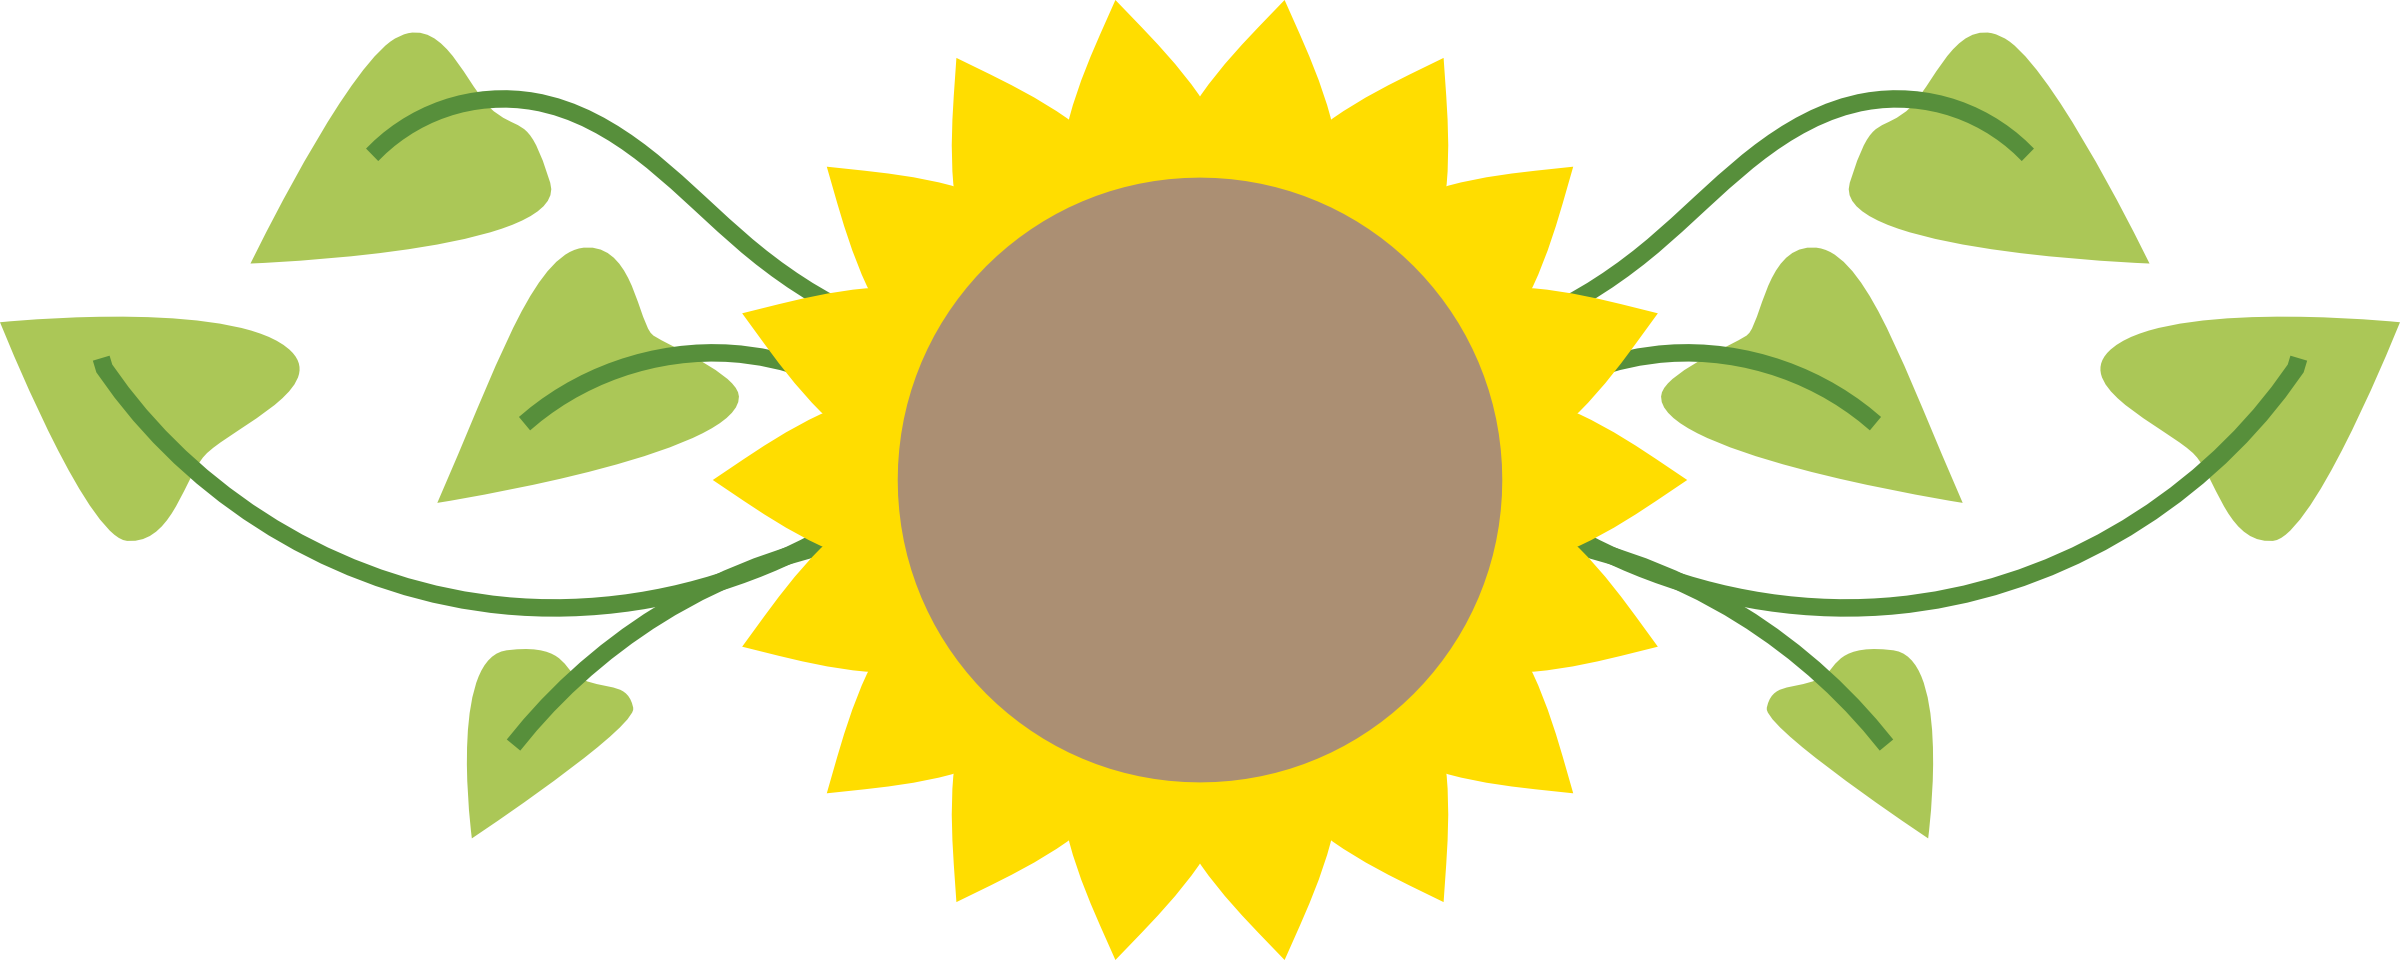 2400x960 Sunflower Border Clipart Free Images 2